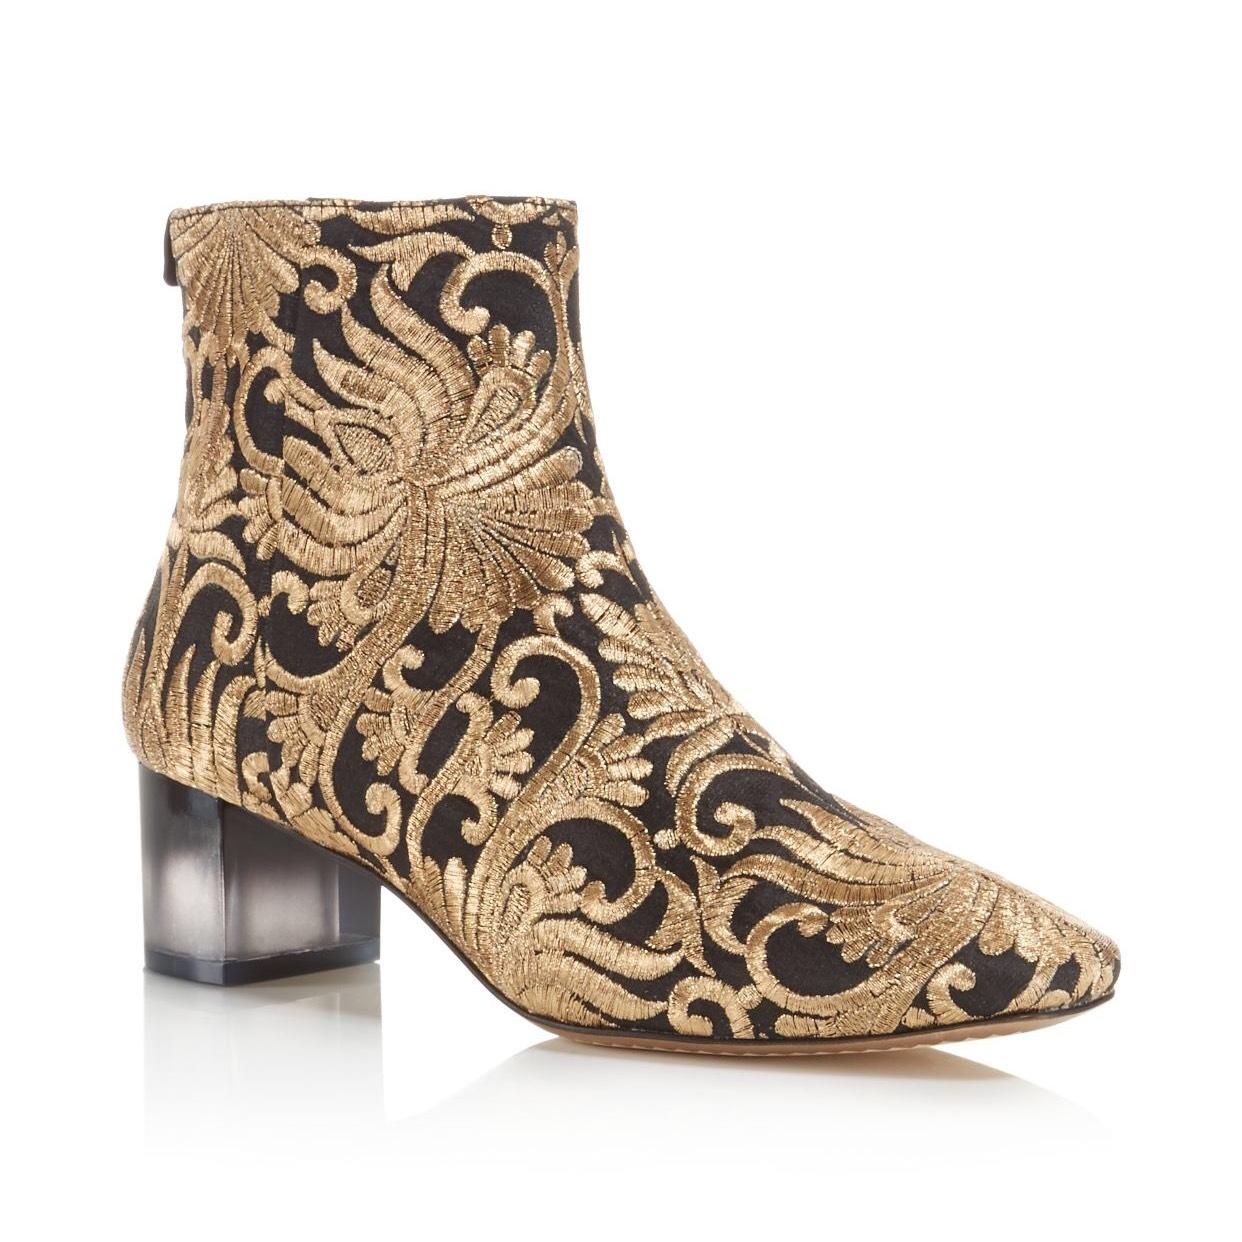 Tory Burch Brocade Canvas Booties cheap price low shipping fee cheap sale countdown package sale purchase dvIQ5jM